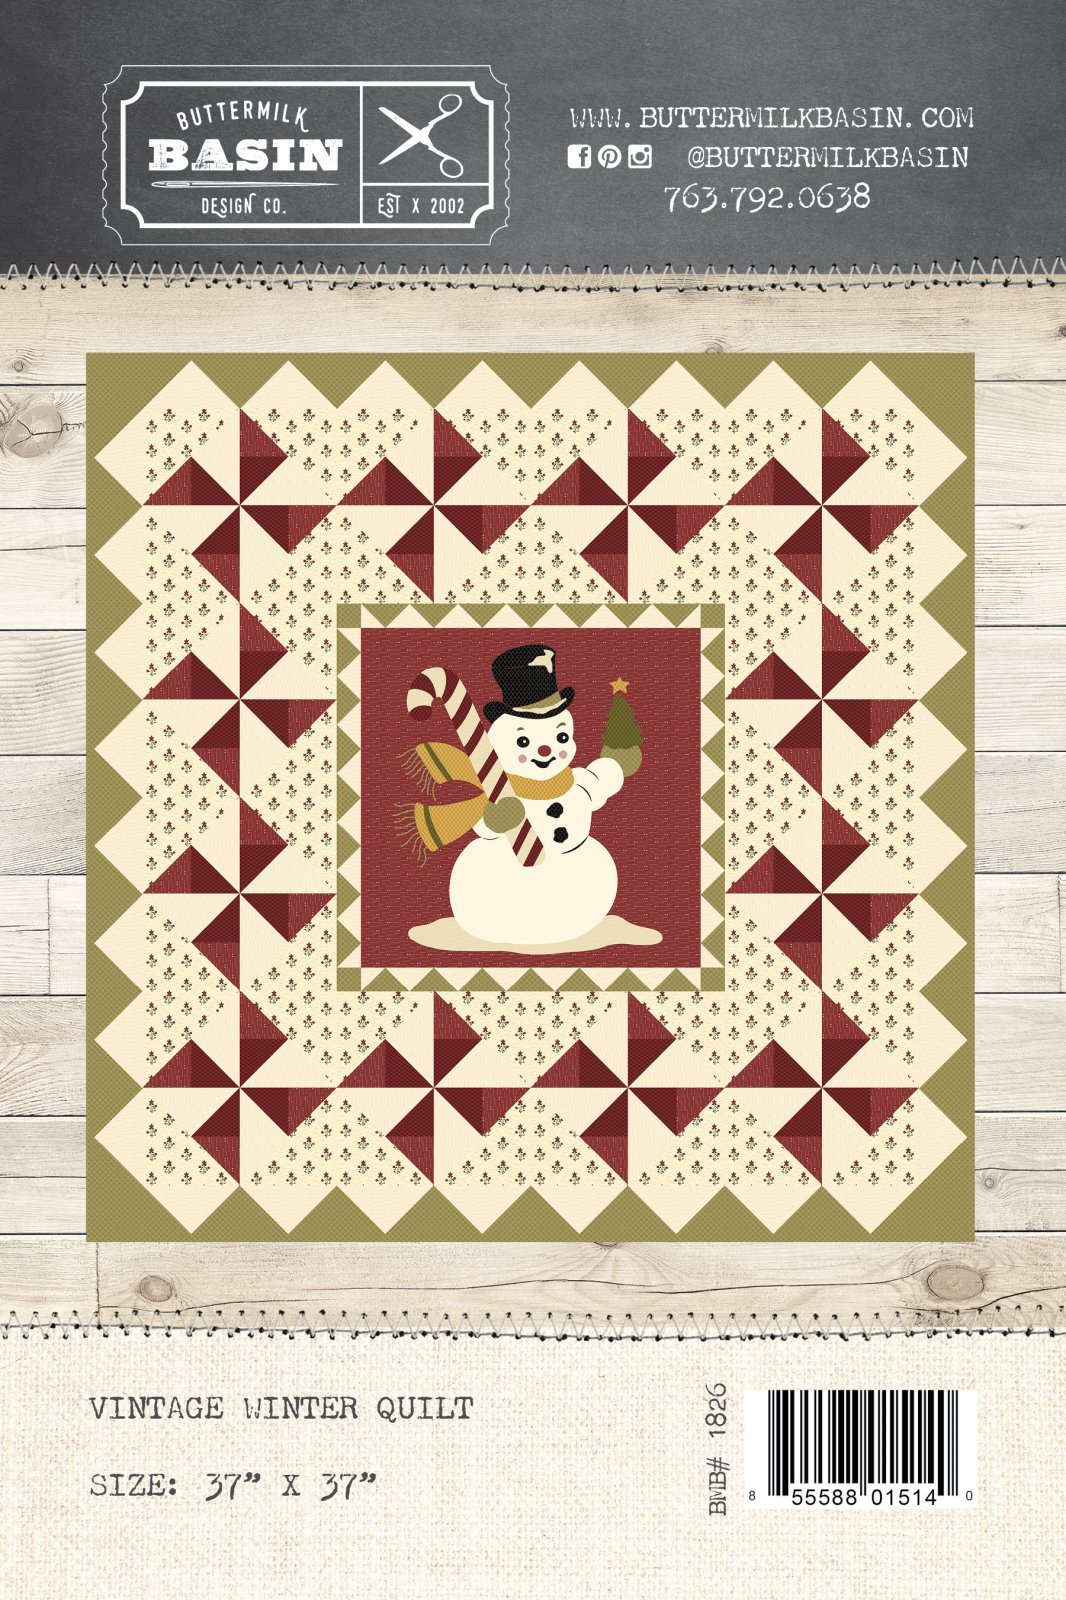 Vintage Winter Quilt Kit